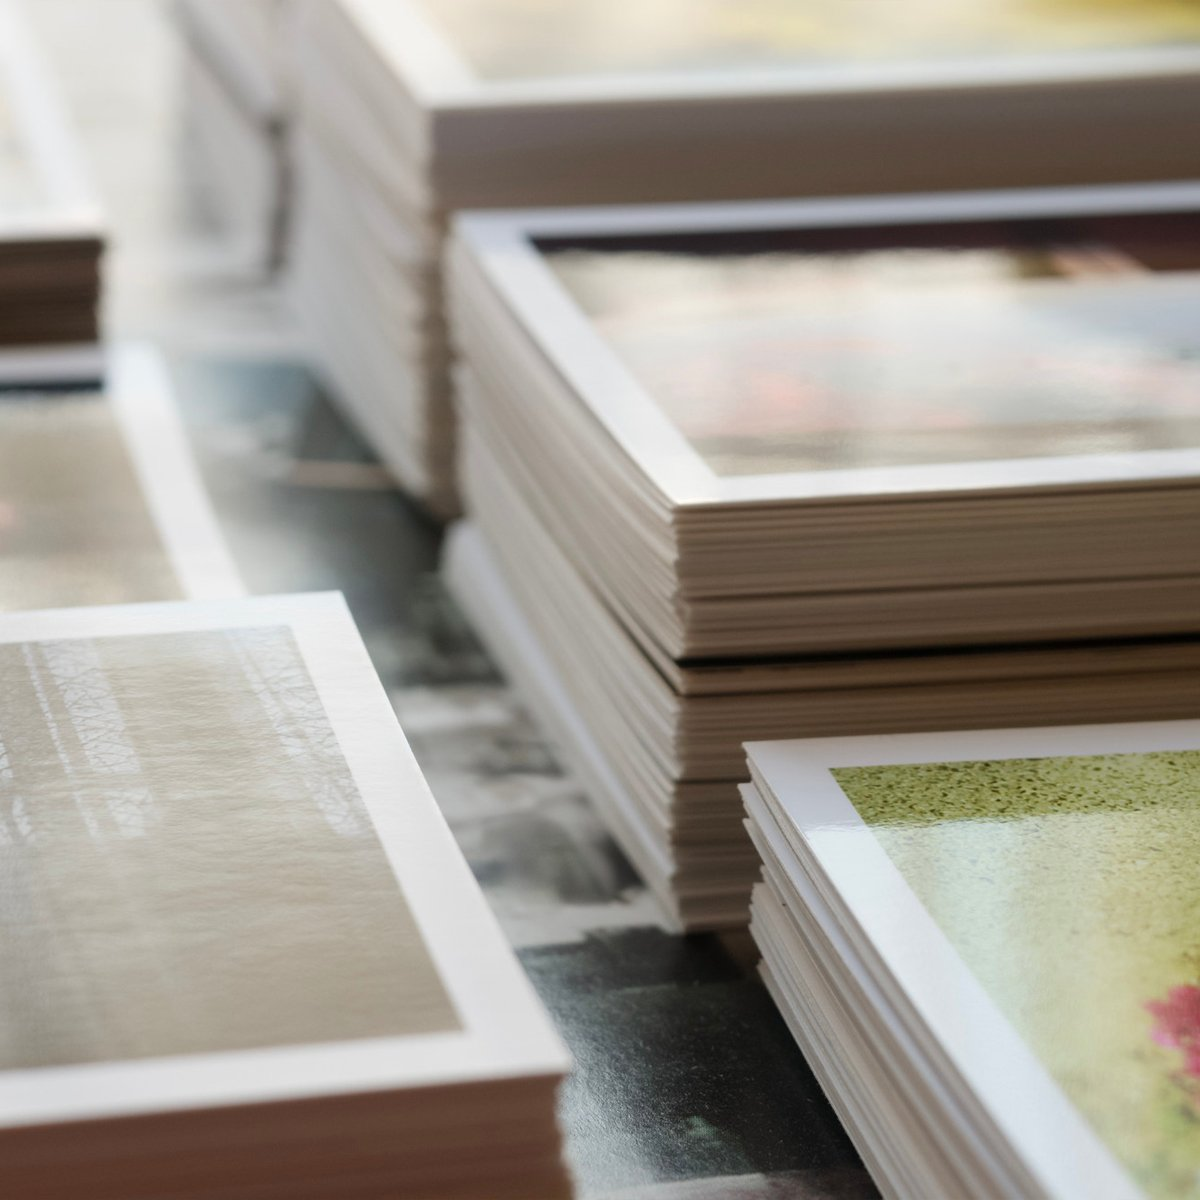 postcards stacked on a table